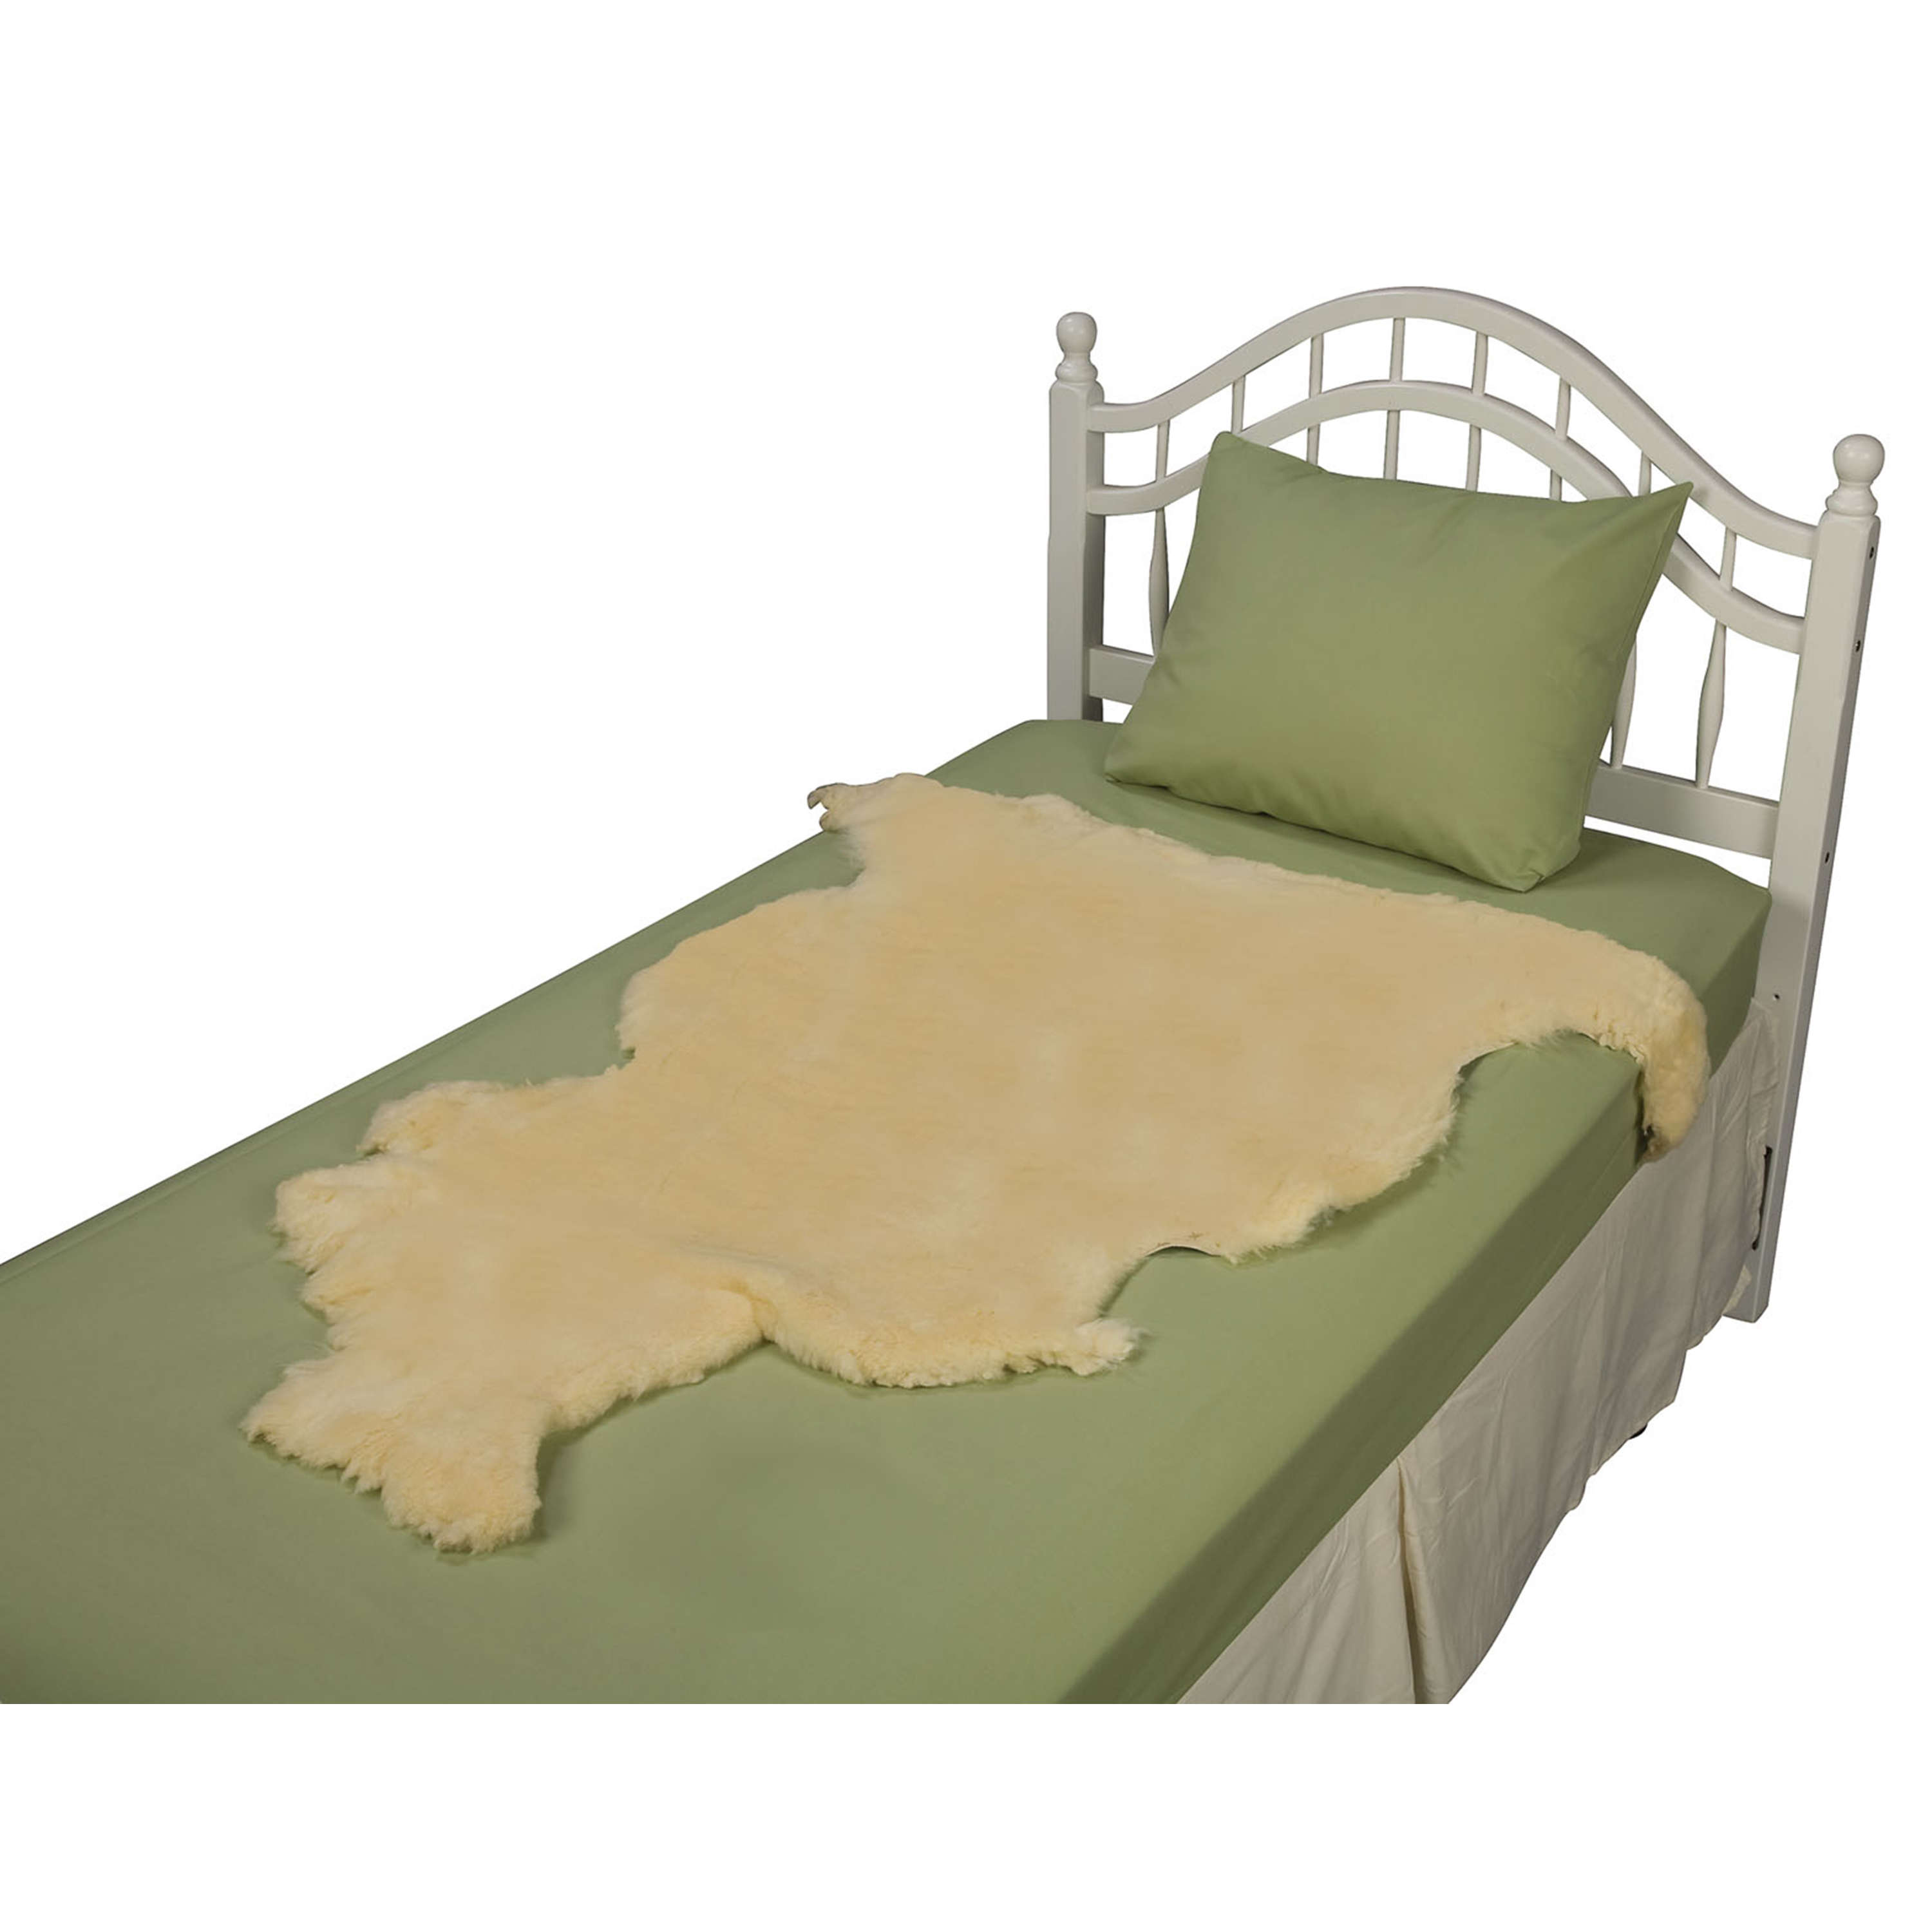 DMI Natural Sheepskin Wool Comfort Mattress Bed Pad Bed Mat, Washable, 8 to 9 Square Feet, Beige